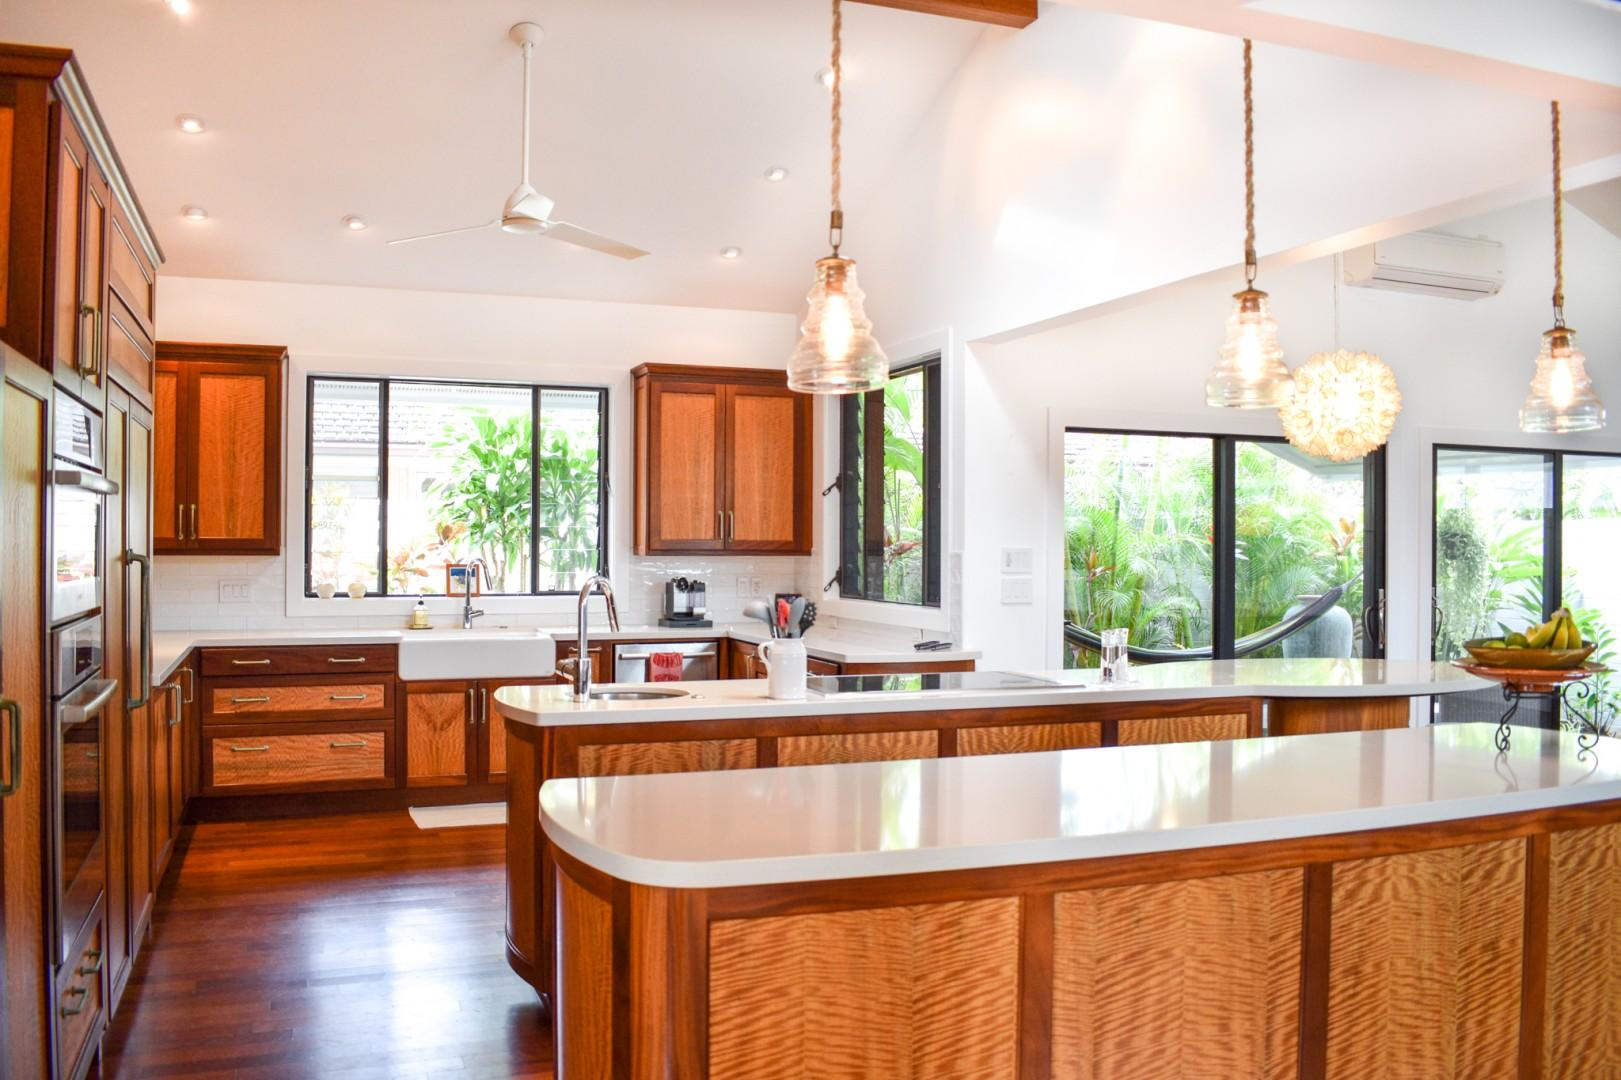 Kitchen with stunning wood cabinetry